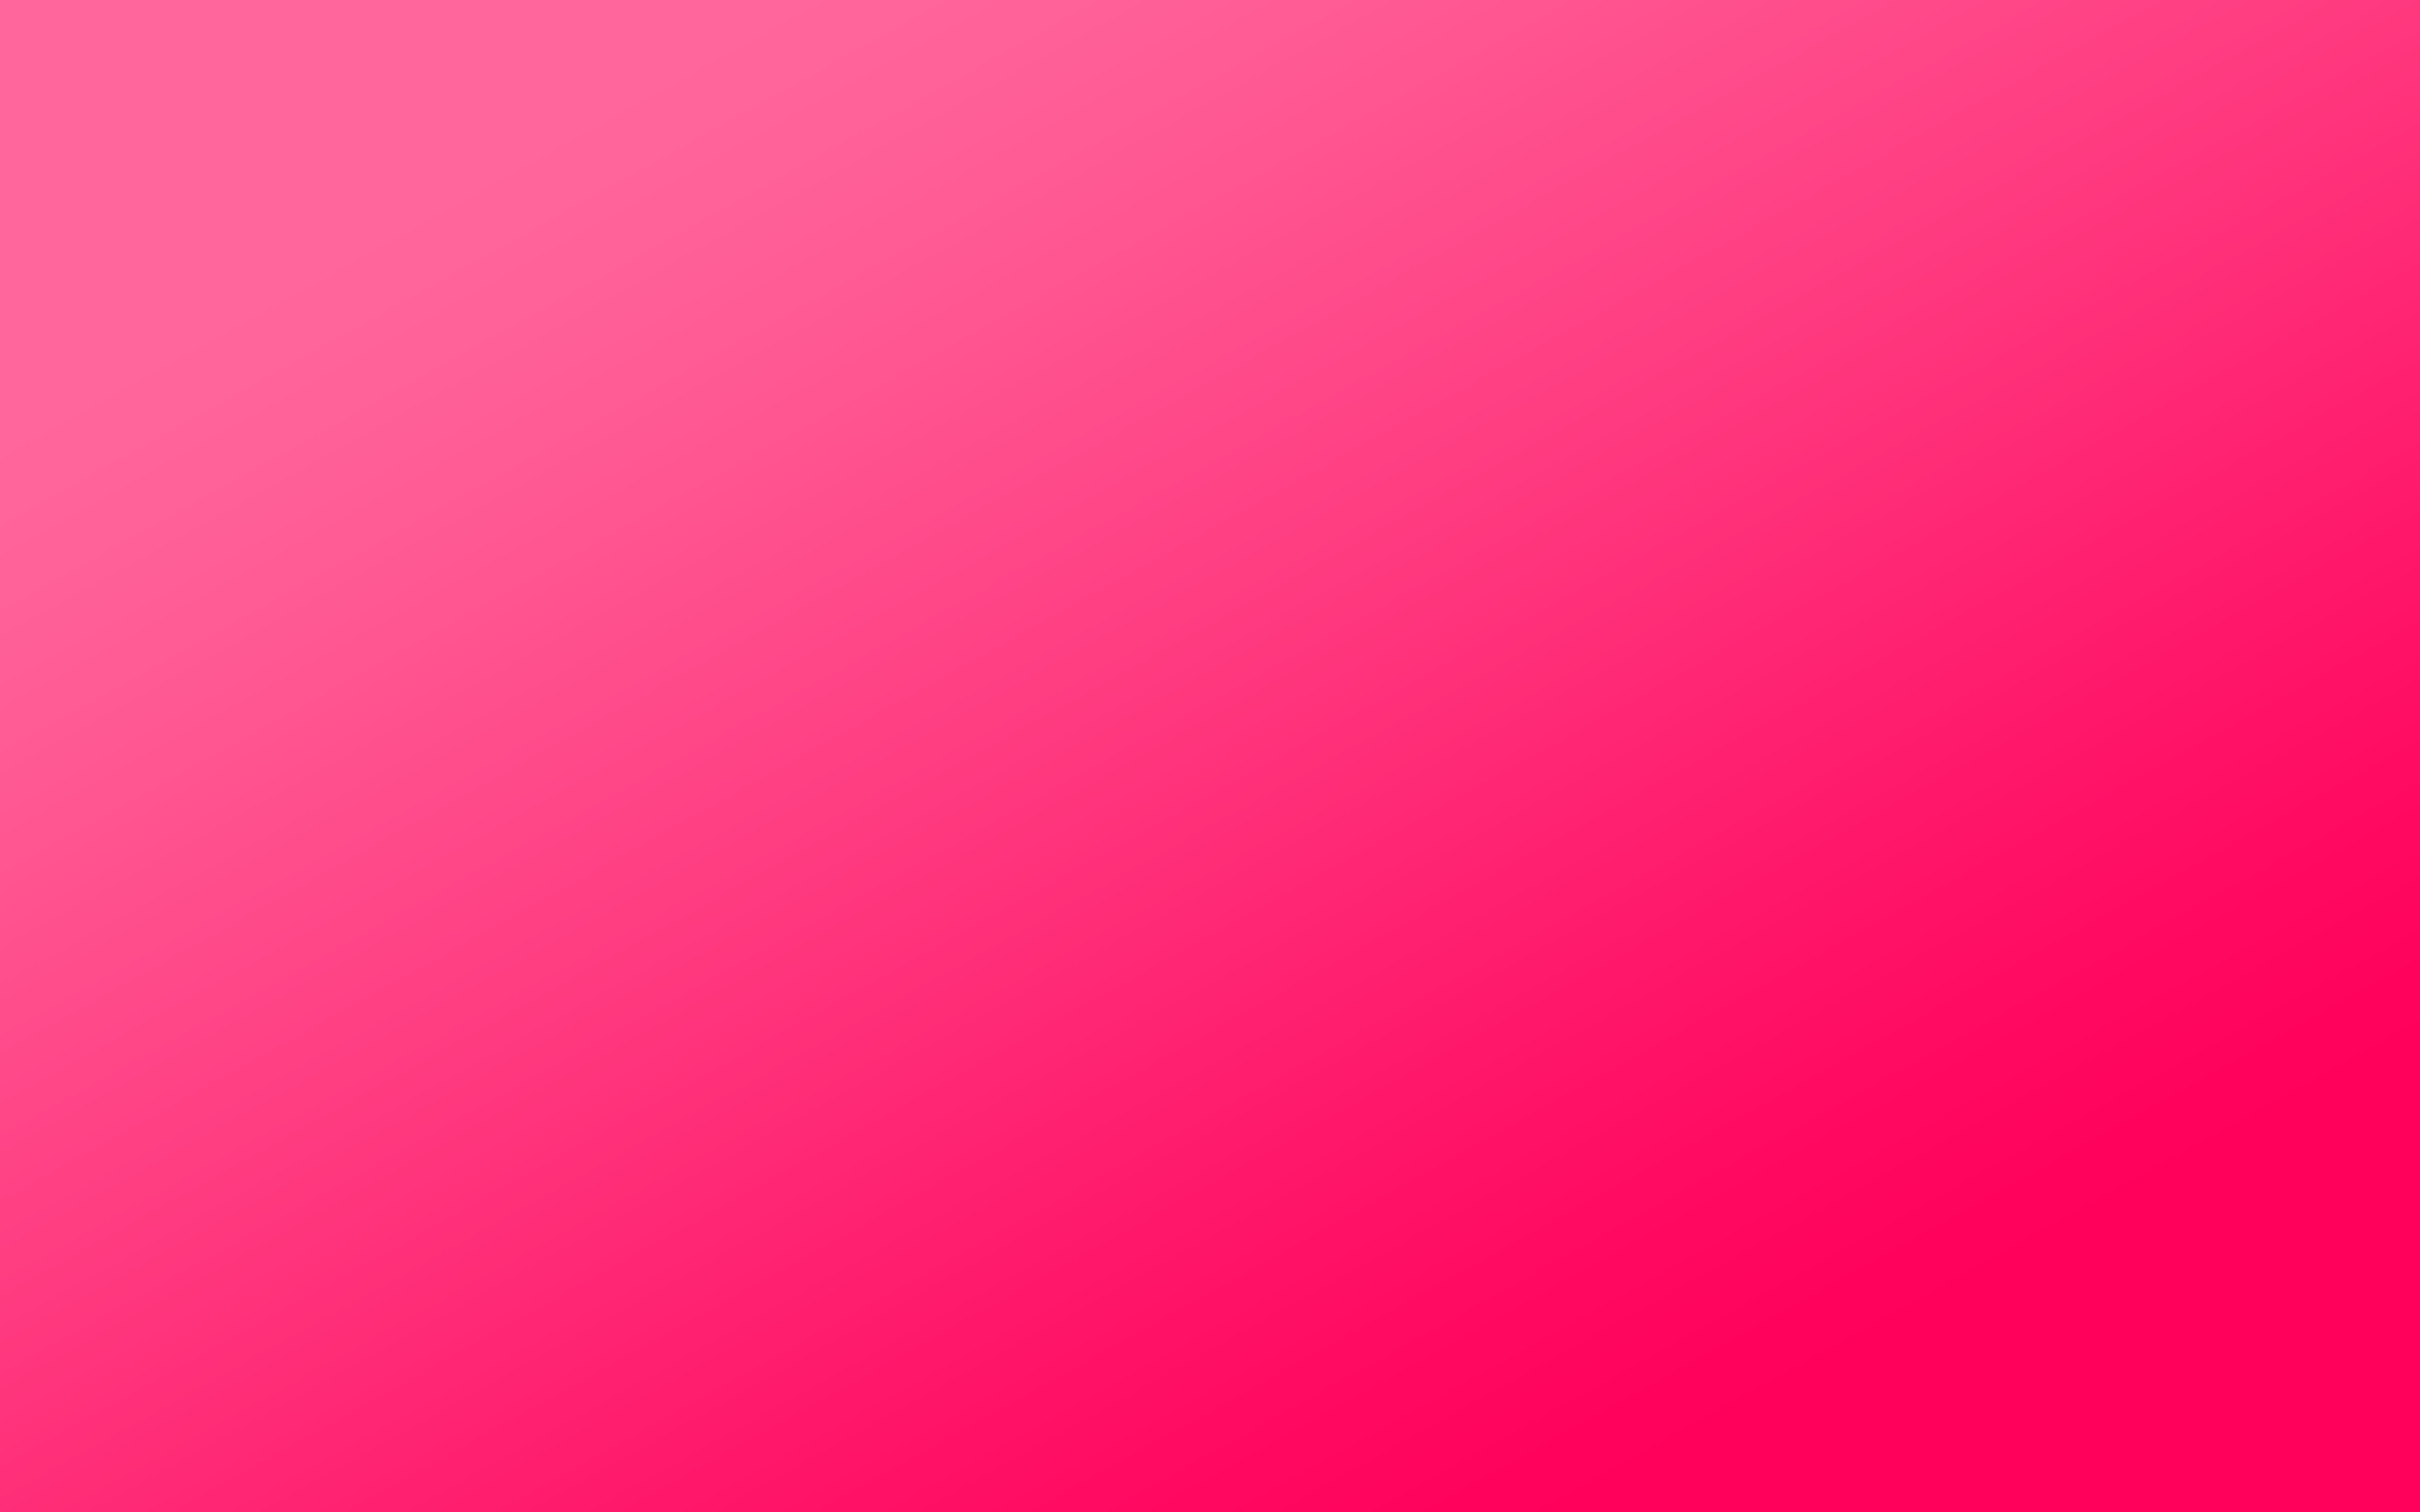 Images Of Pink Backgrounds Wallpapertag